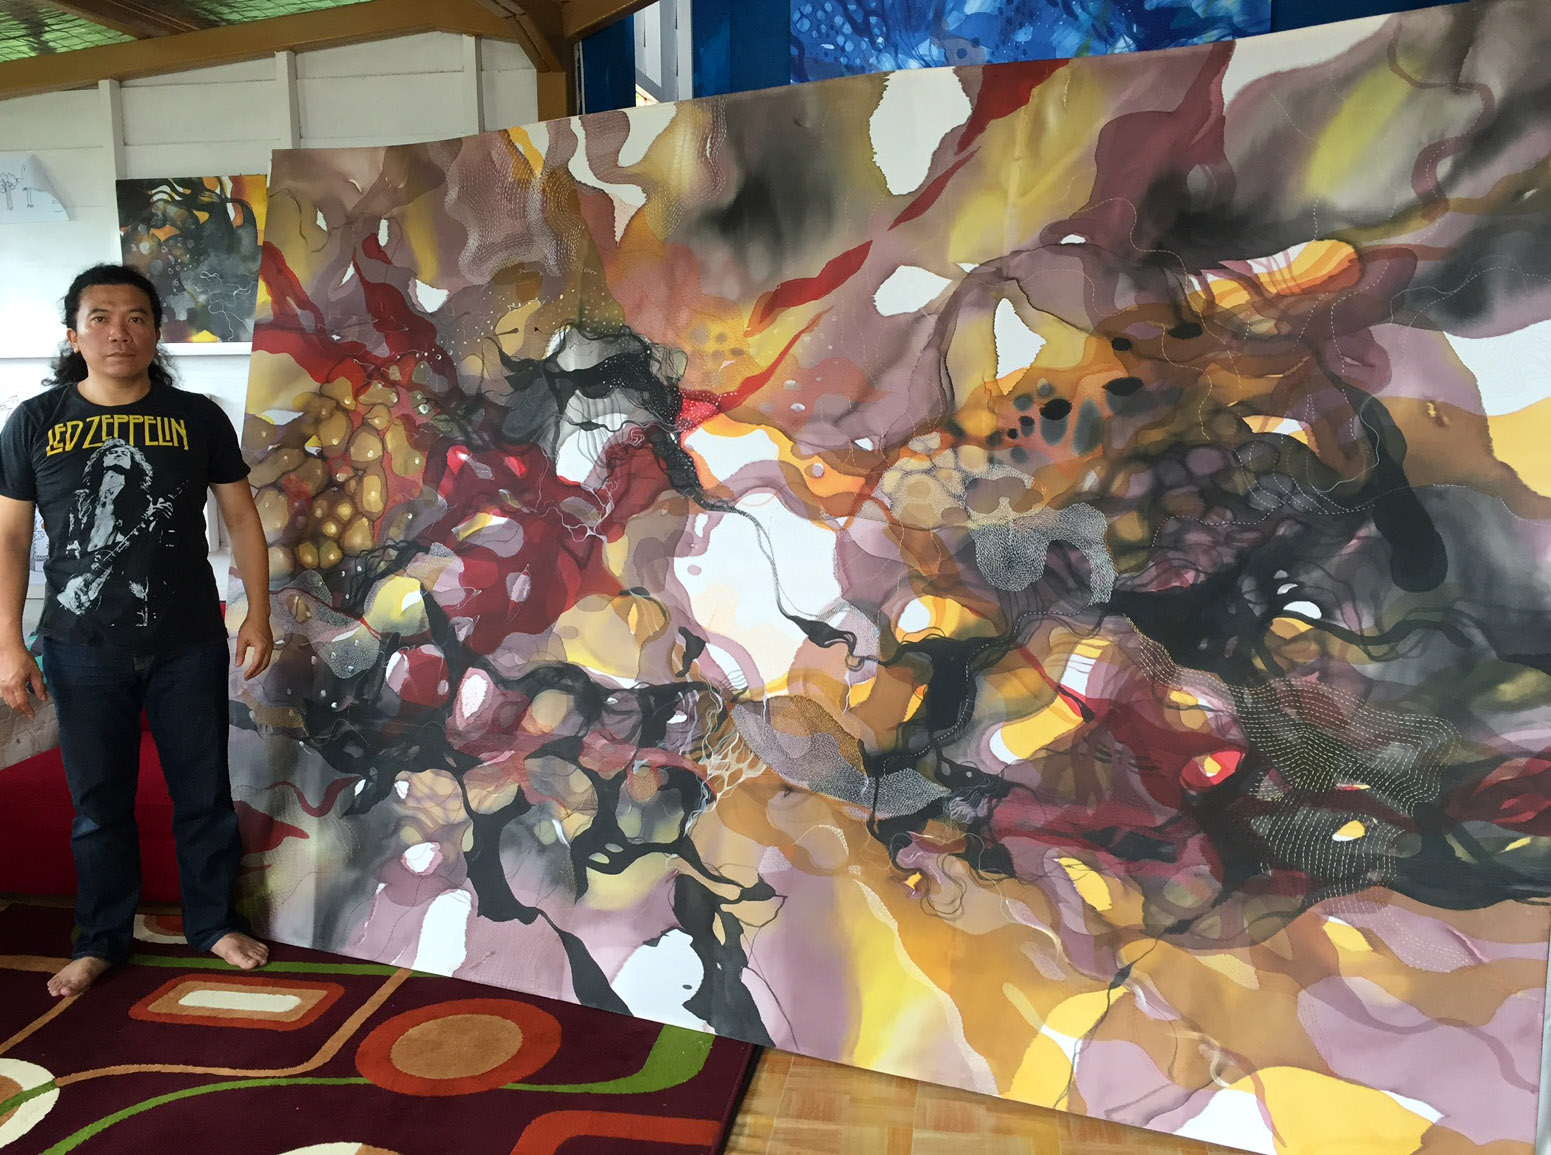 Journey of Happiness '300x200cm Painted silky canvases & hand stitching